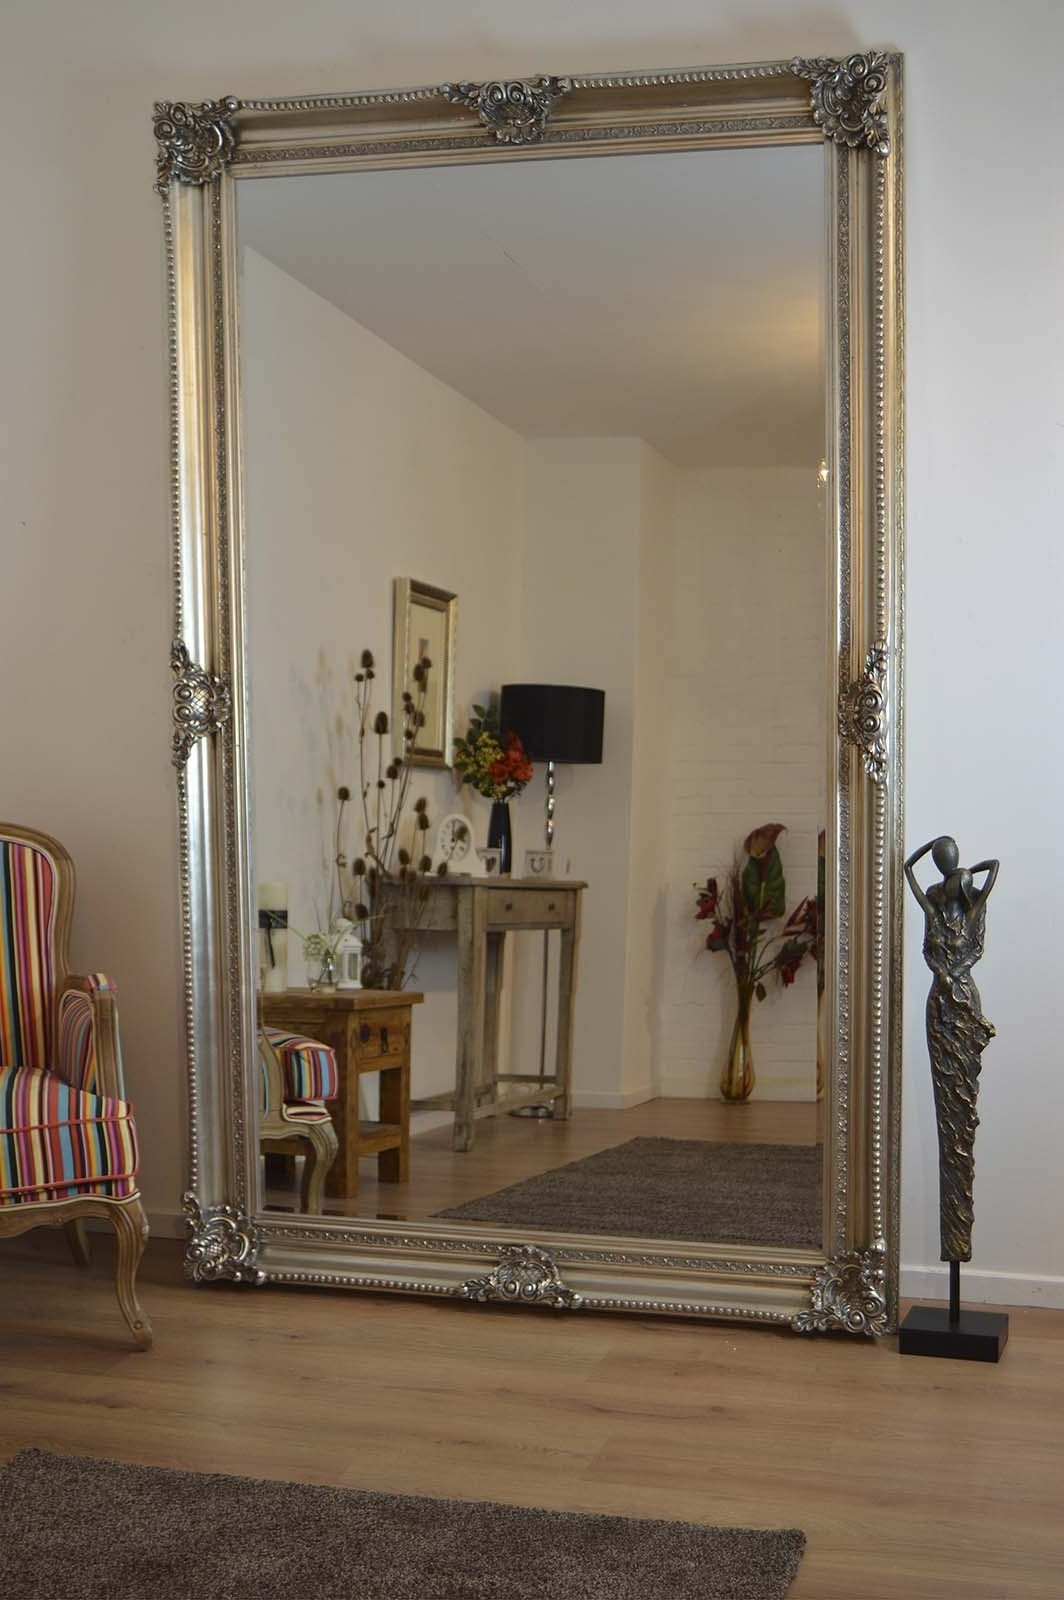 Large Leaning Wall Mirrors In 2020 Extra Large Leaning Wall Mirrors • Bathroom Mirrors And Wall Mirrors (View 5 of 20)